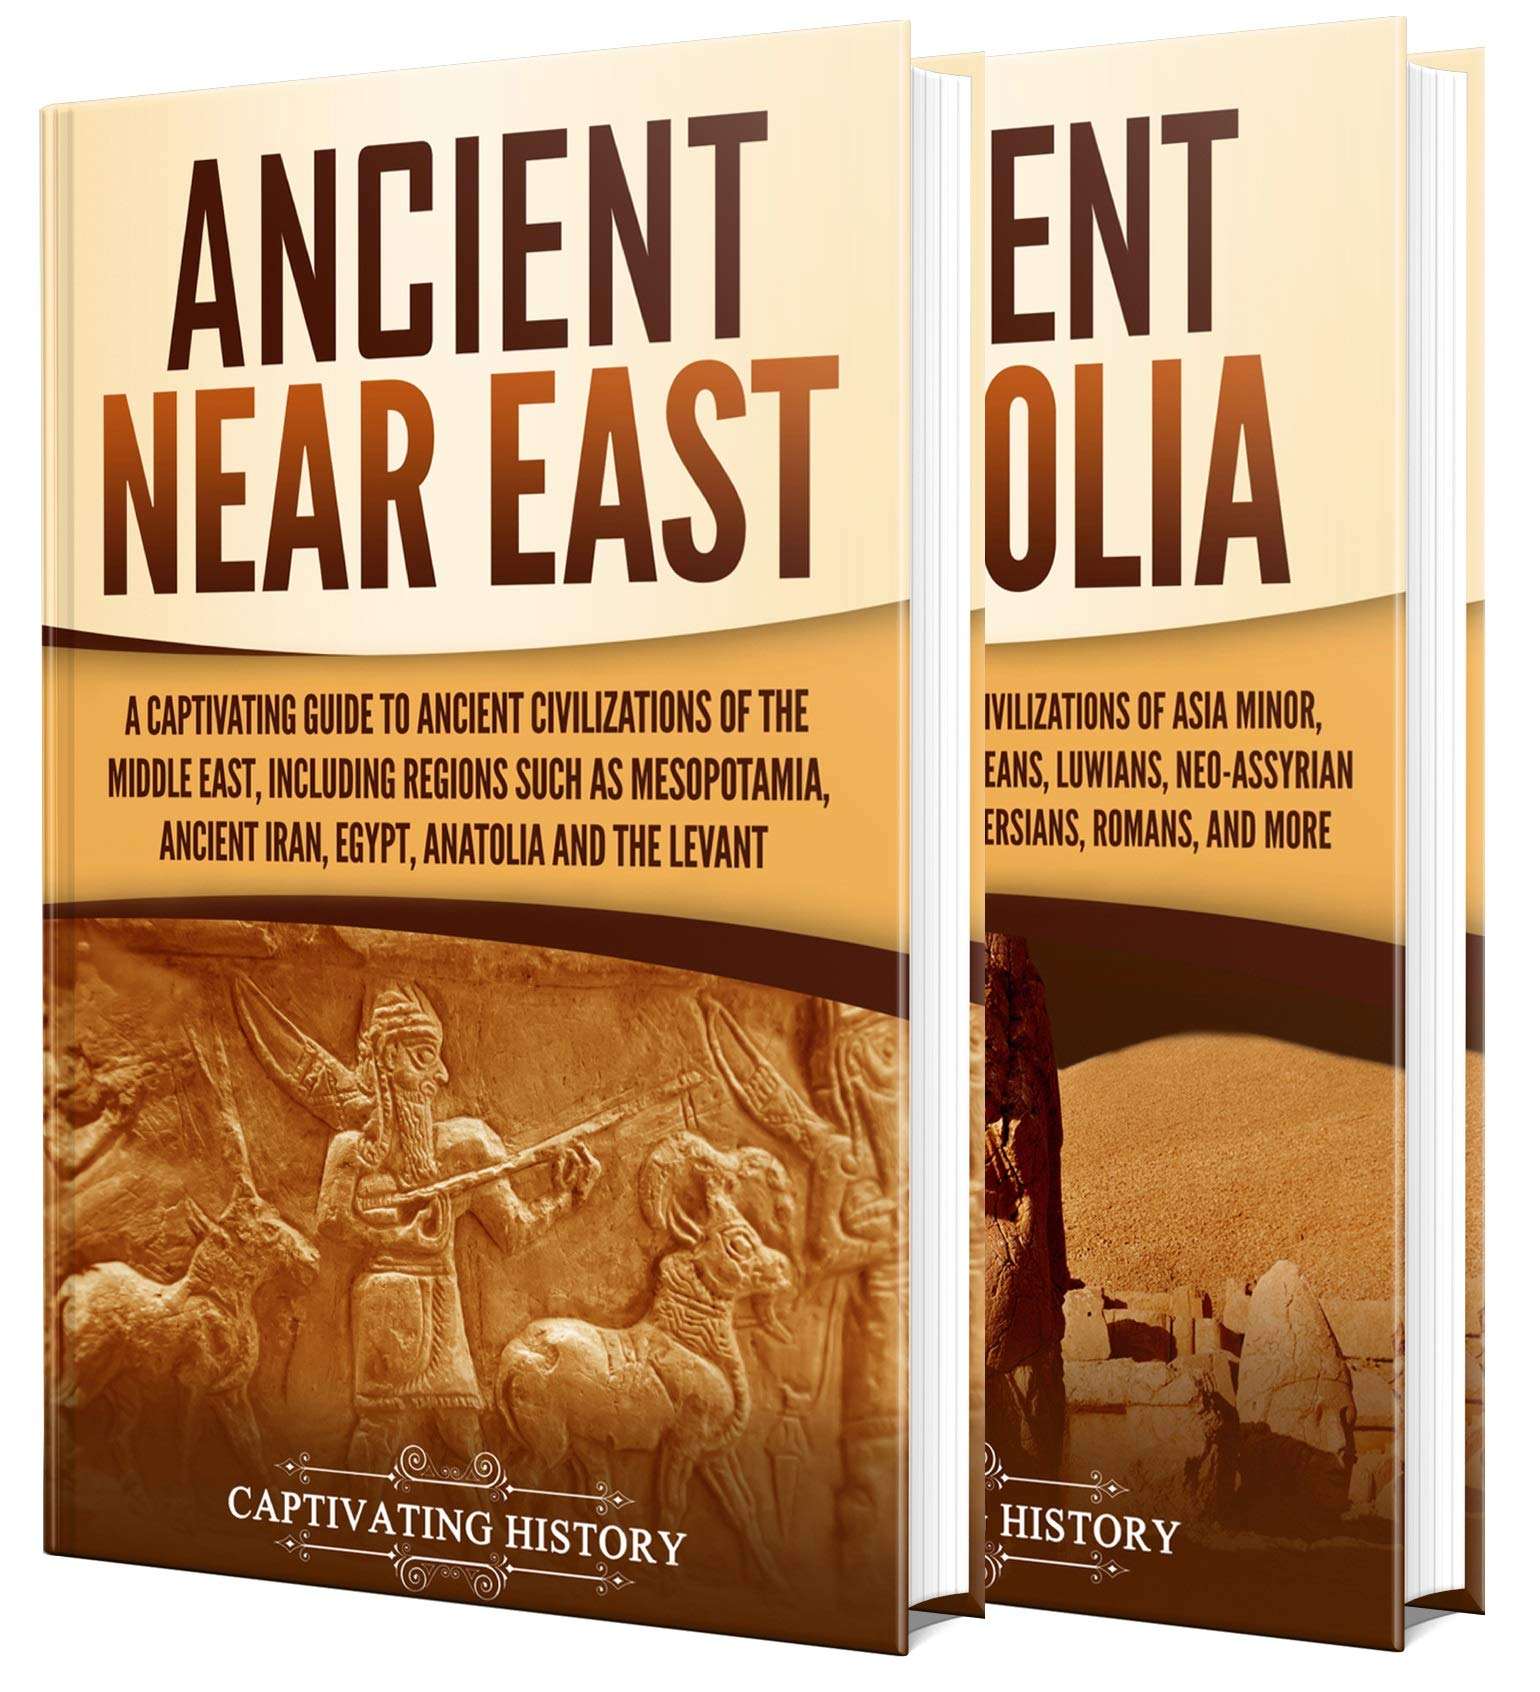 Ancient Middle East: A Captivating Guide to Civilizations and Empires of the Ancient Near East and Ancient Anatolia